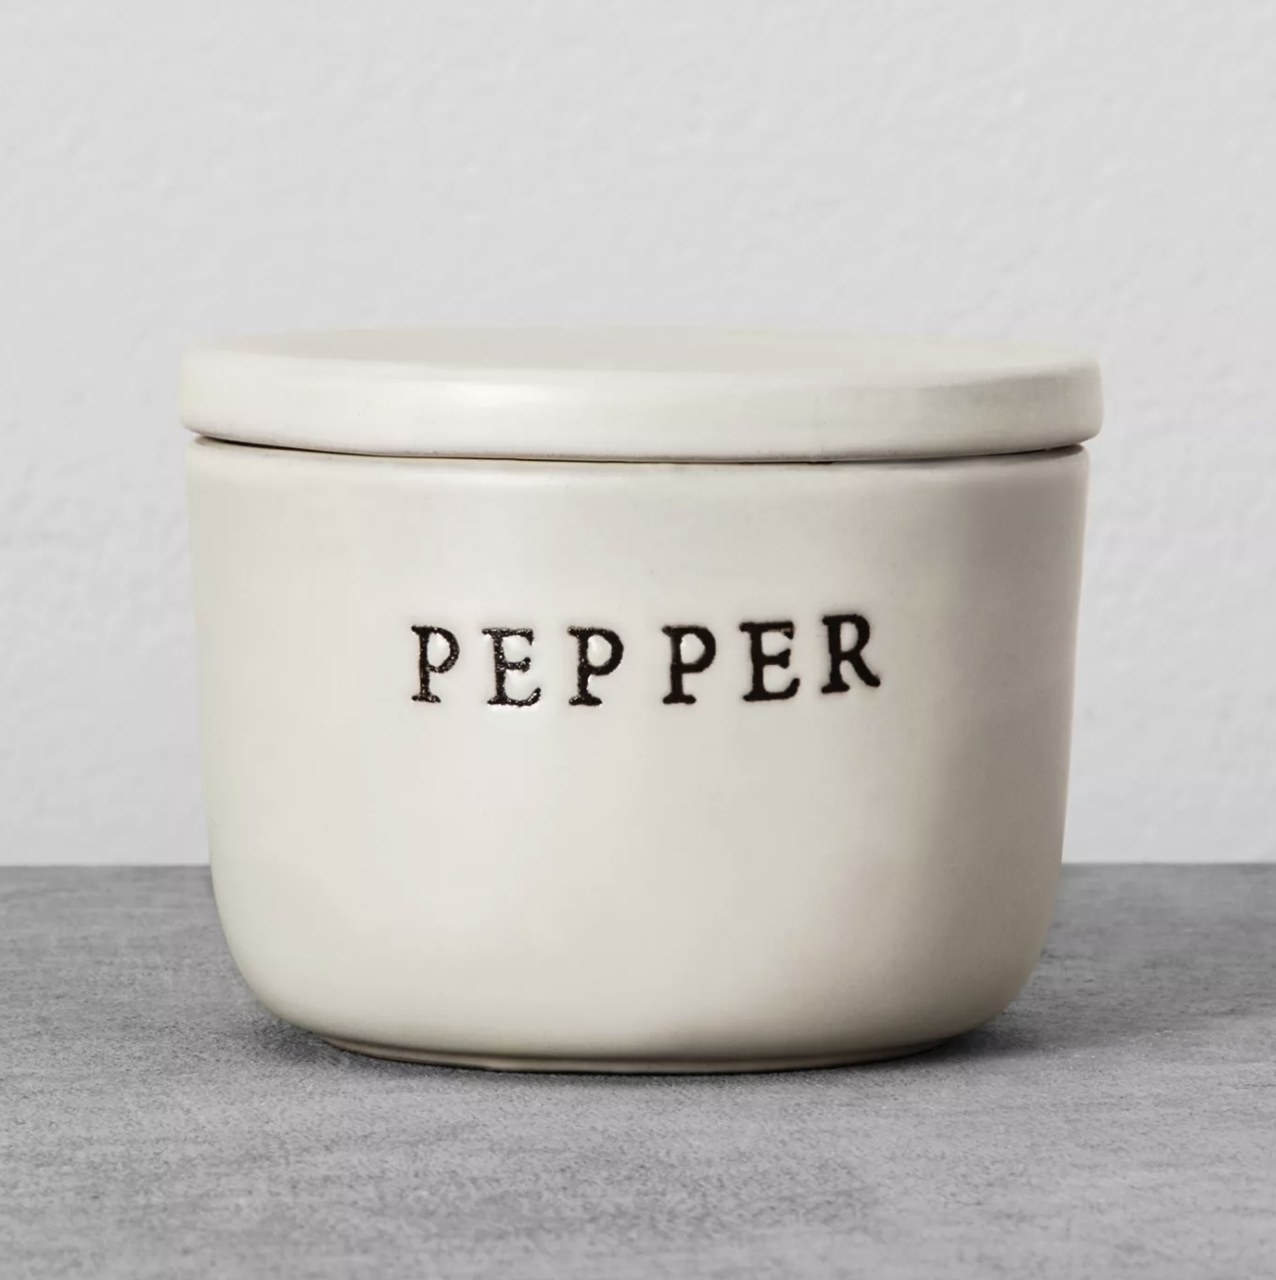 Pepper container on counter